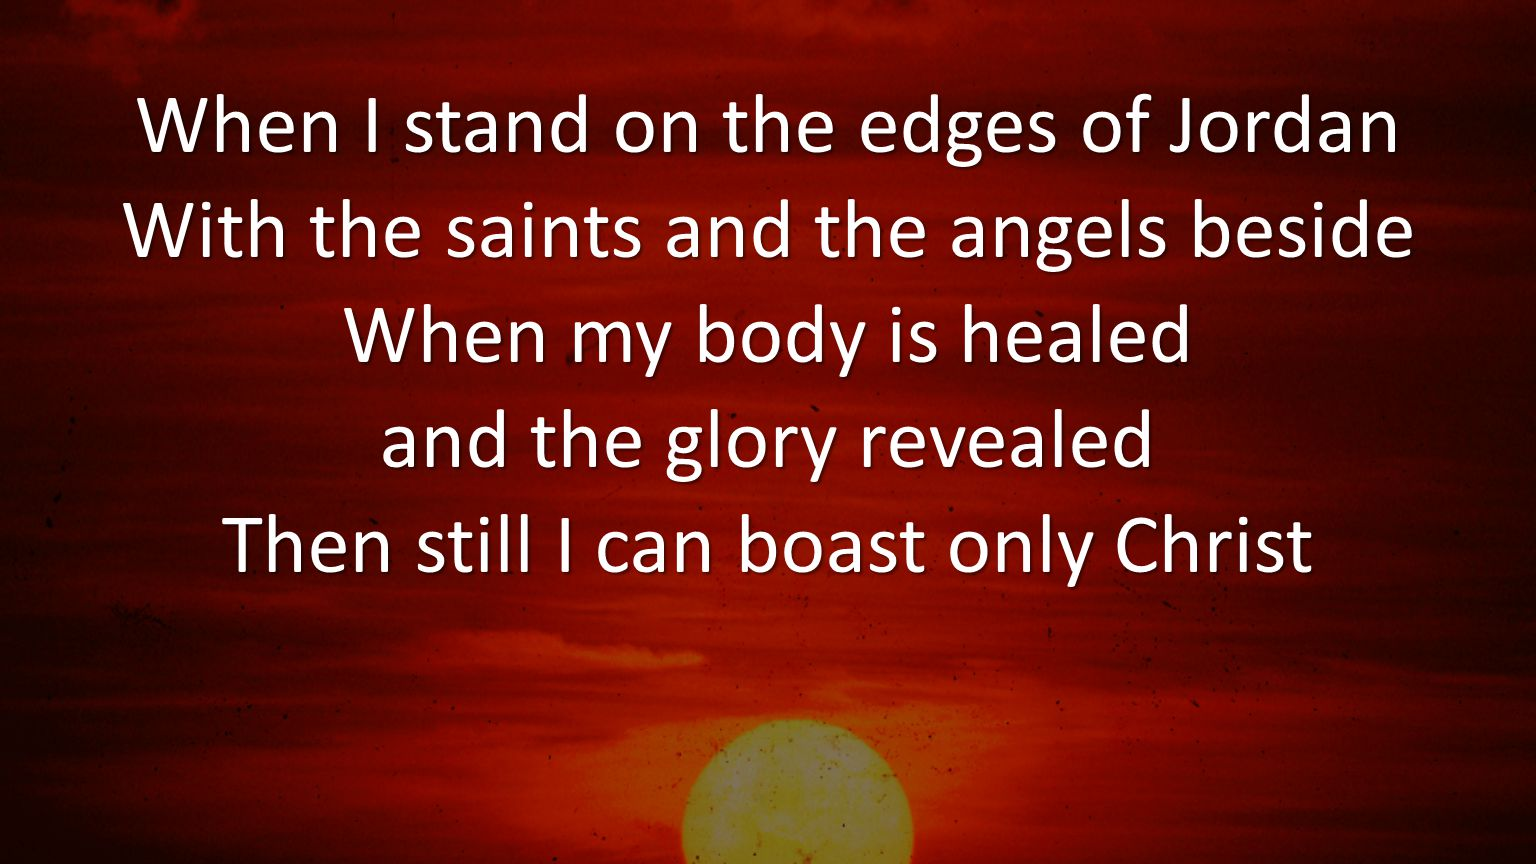 When I stand on the edges of Jordan With the saints and the angels beside When my body is healed and the glory revealed Then still I can boast only Ch